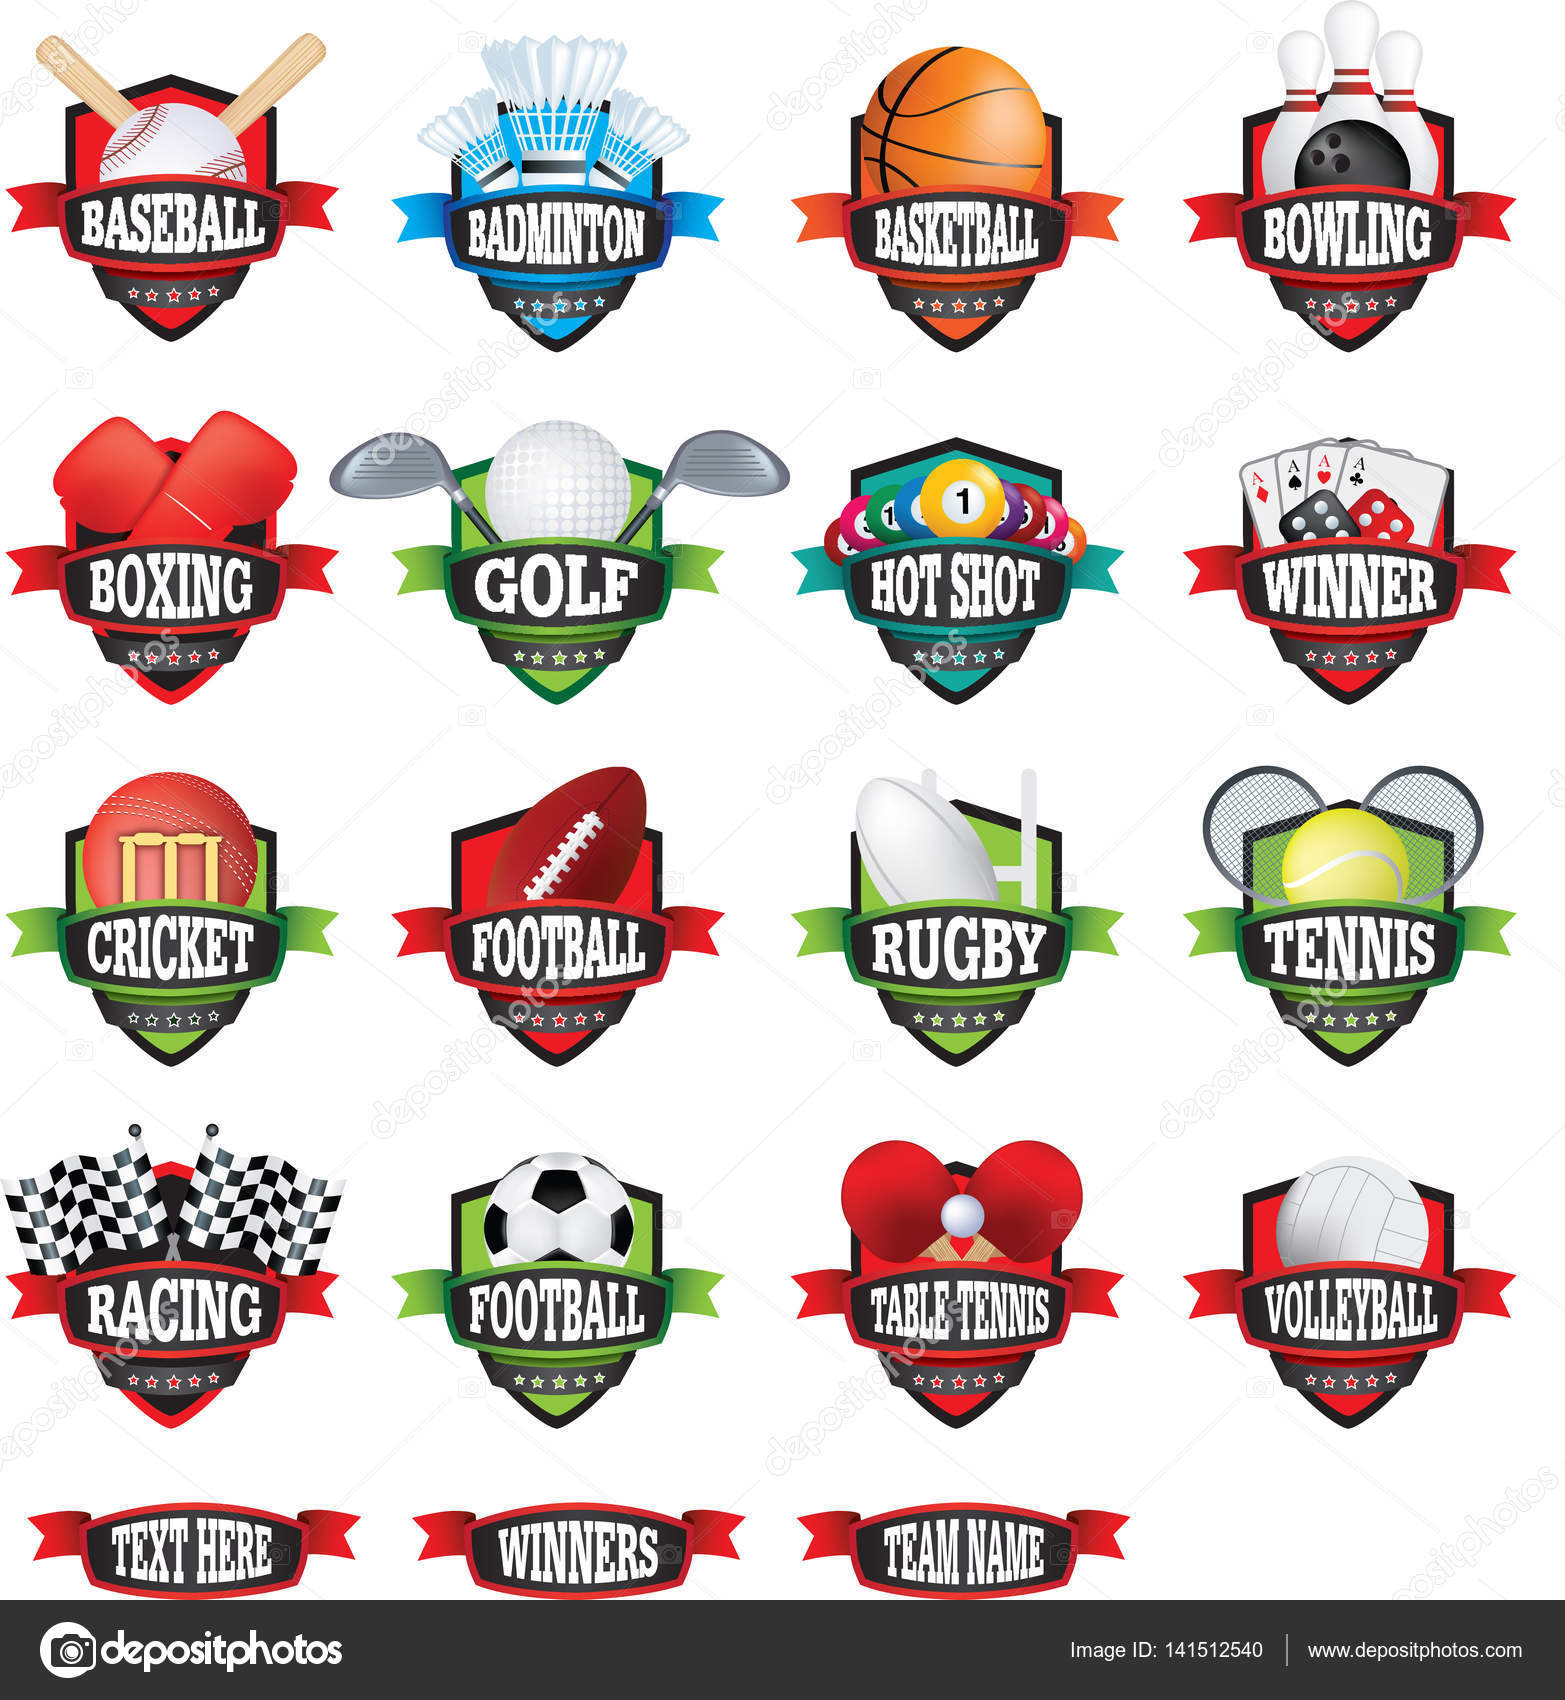 Images: sports logo and names   Sports teams names badges or